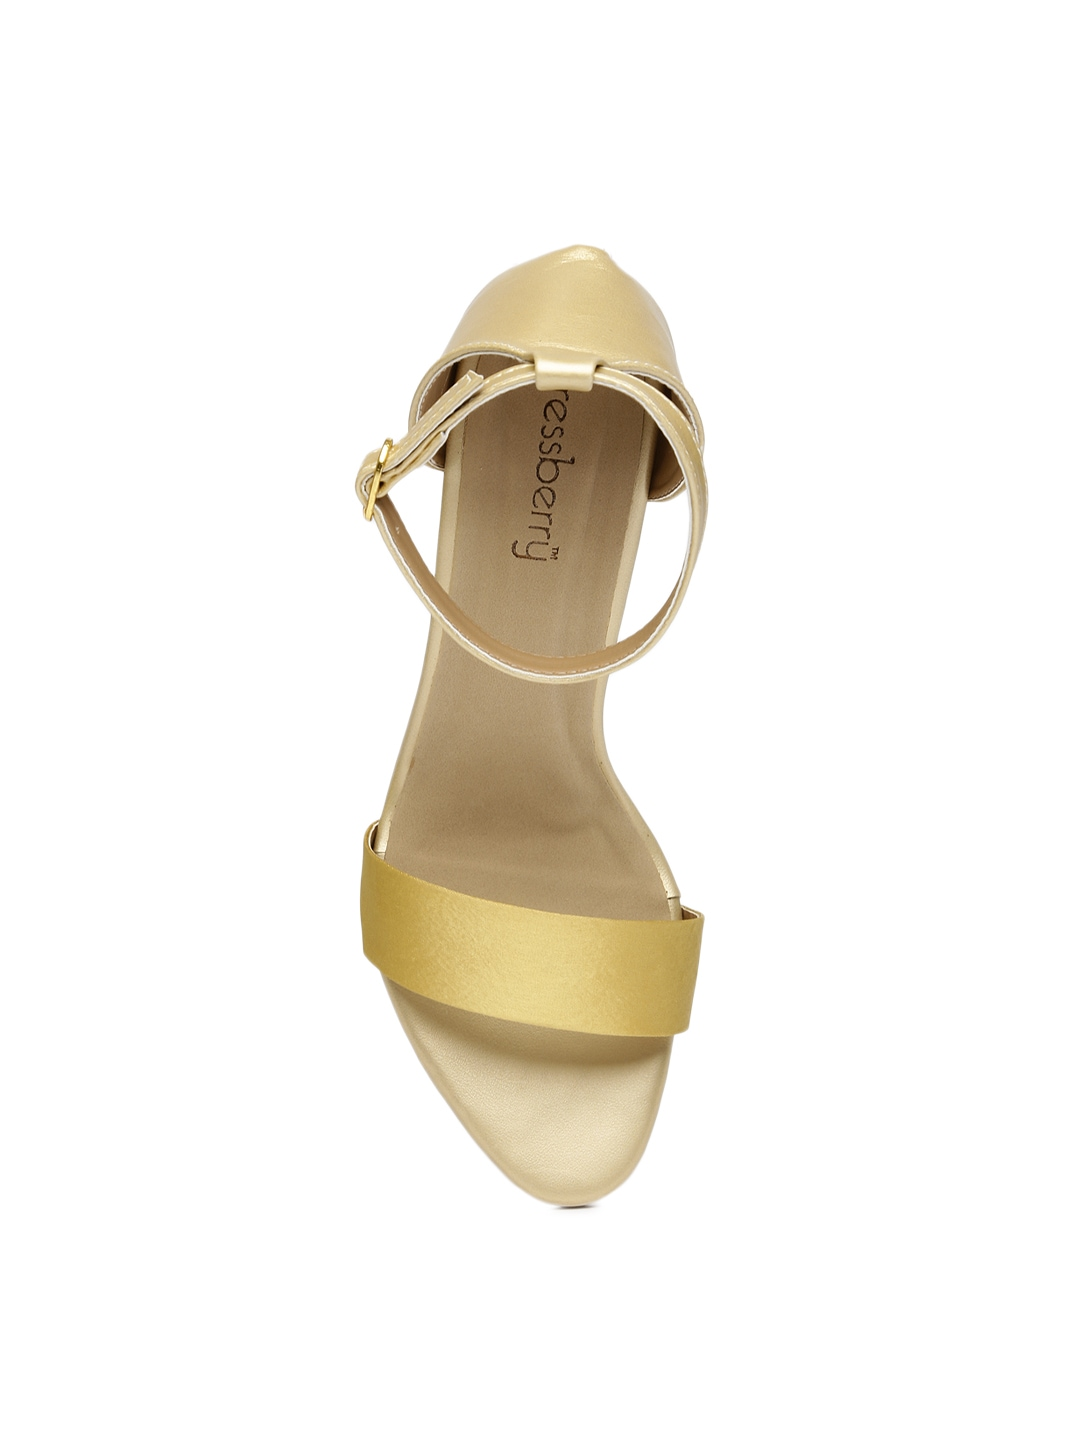 Muted Gold Heels